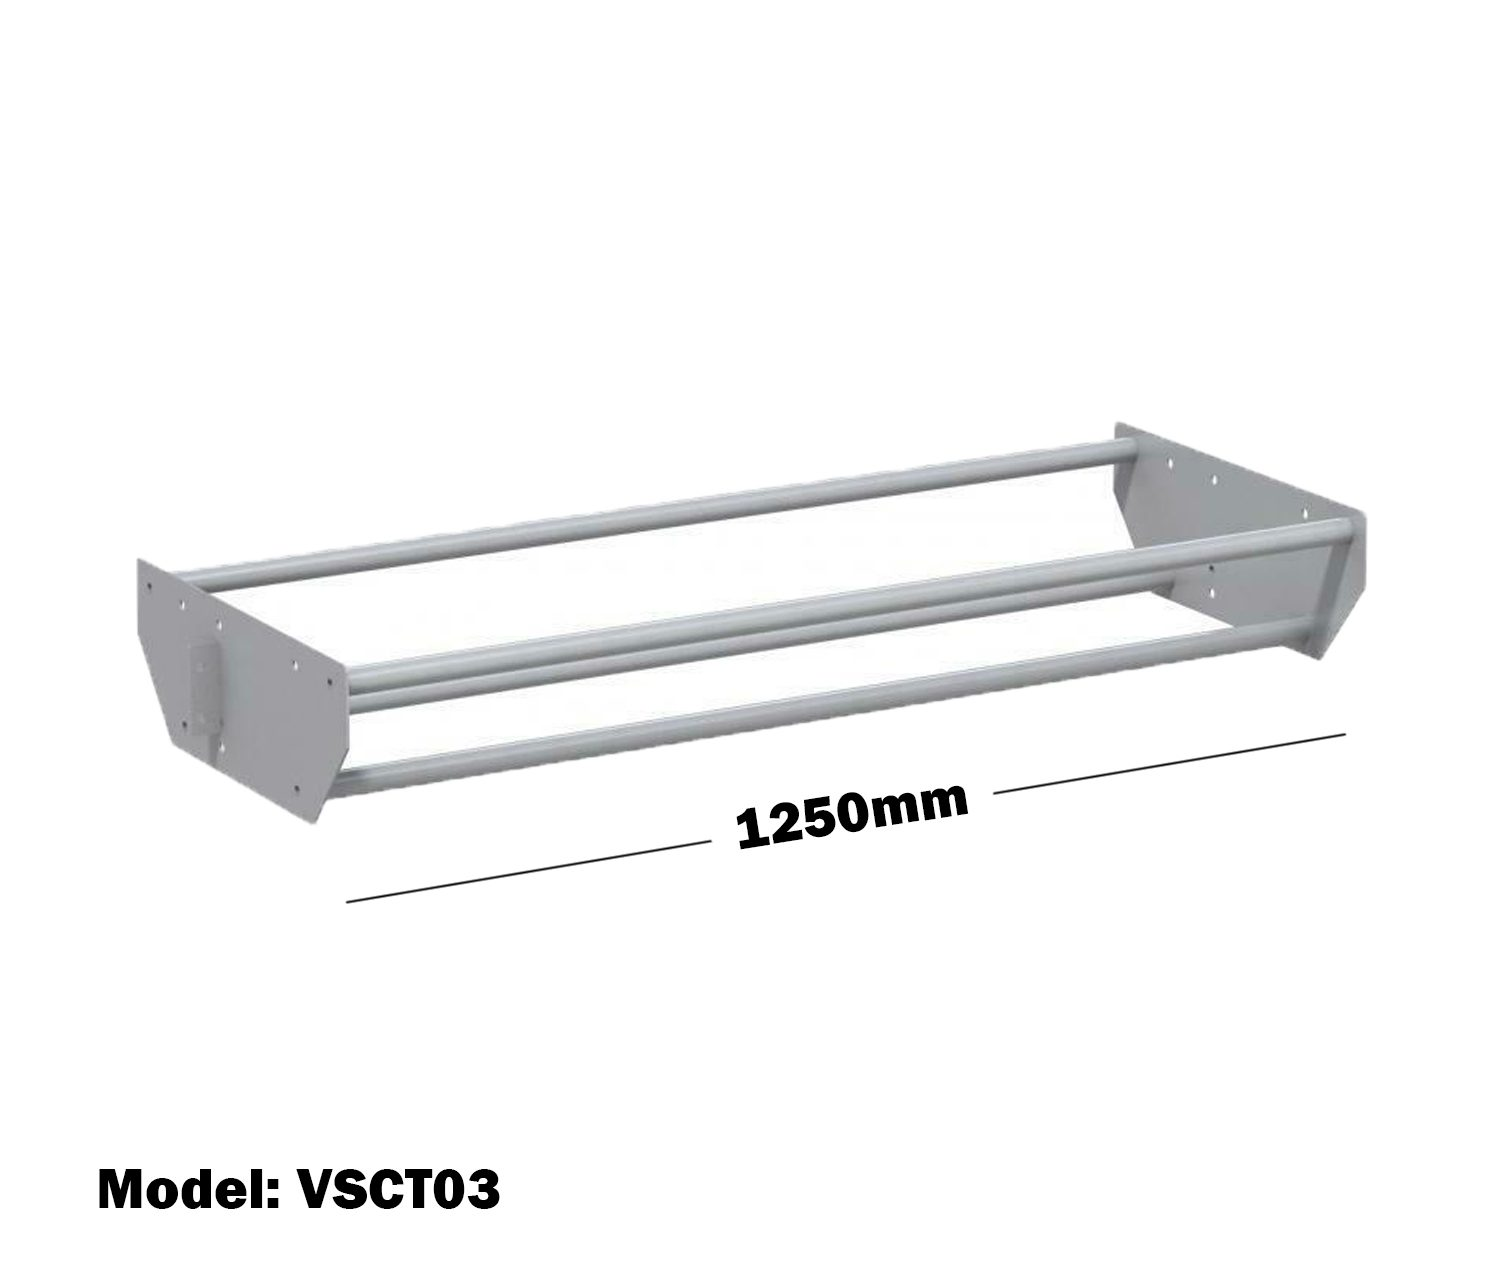 Van Shelving 1250mm(L) Cable Tray For Van Shelving System VSCT03